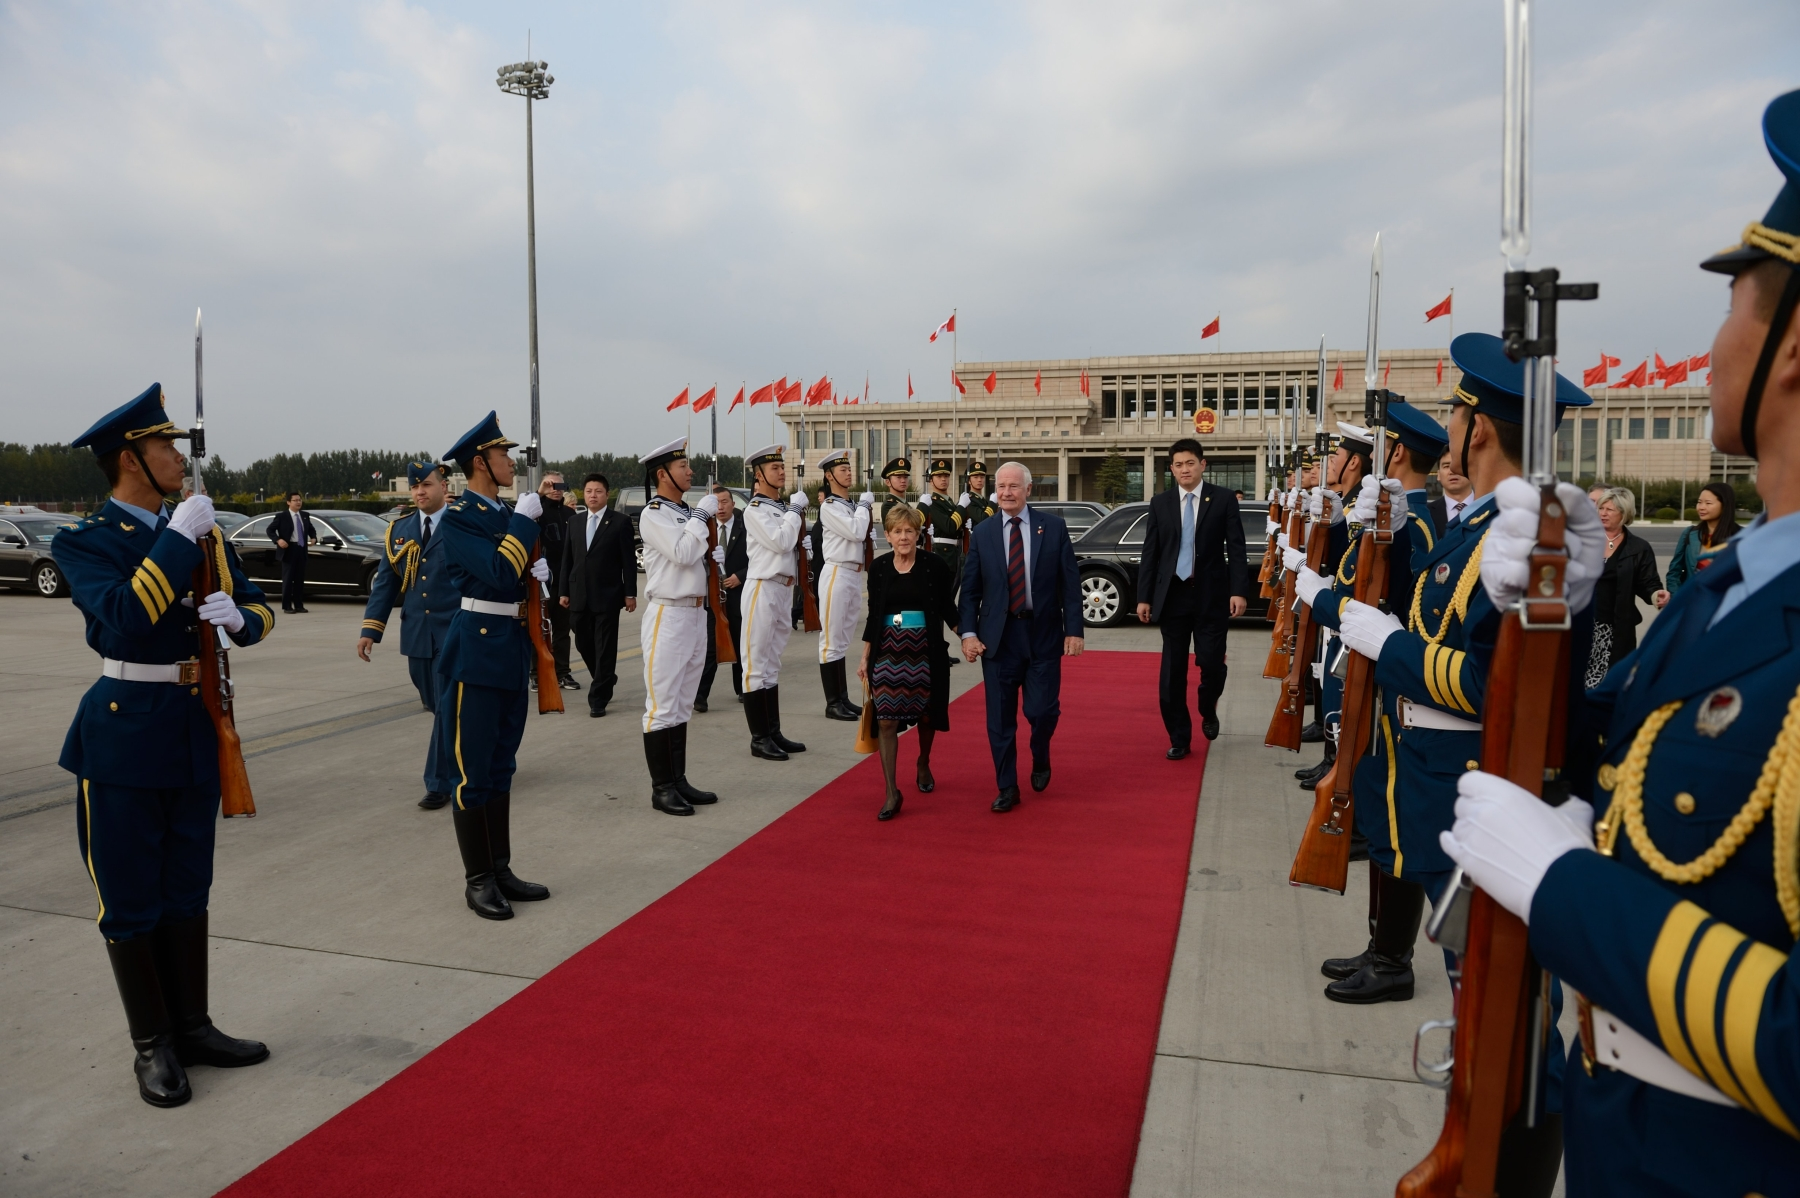 Their Excellencies were bidden farewell by a guard of honour in Beijing before heading to Shanghai on October 19, 2013.